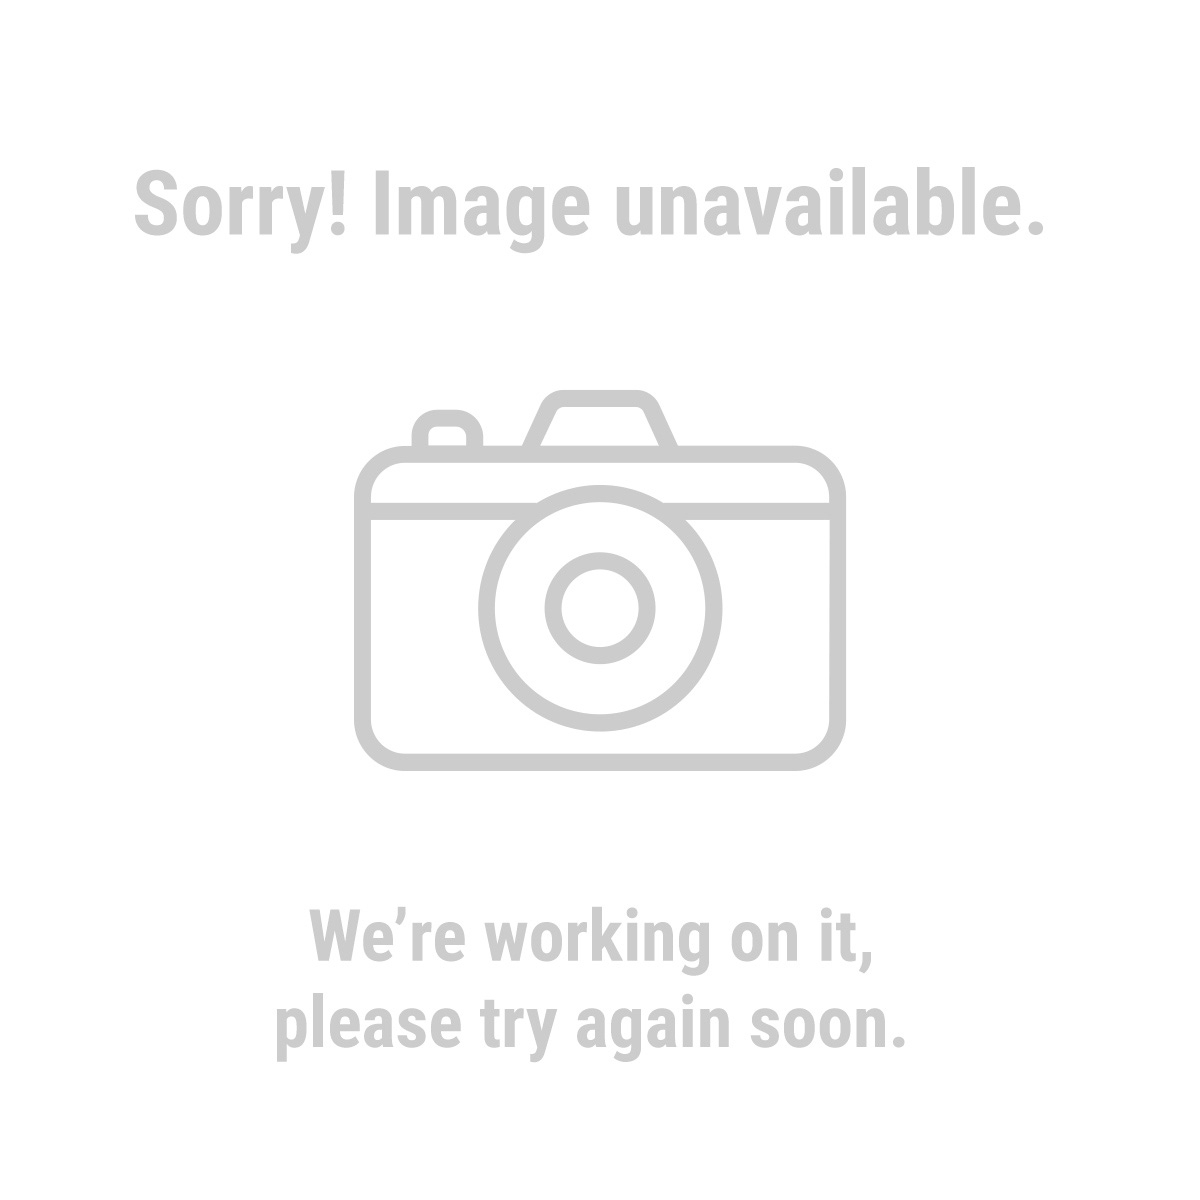 Lifetime Carbide 90313 Pack of 6 Fine Grade Aluminum Oxide Sanding Sponges with Beveled Edge